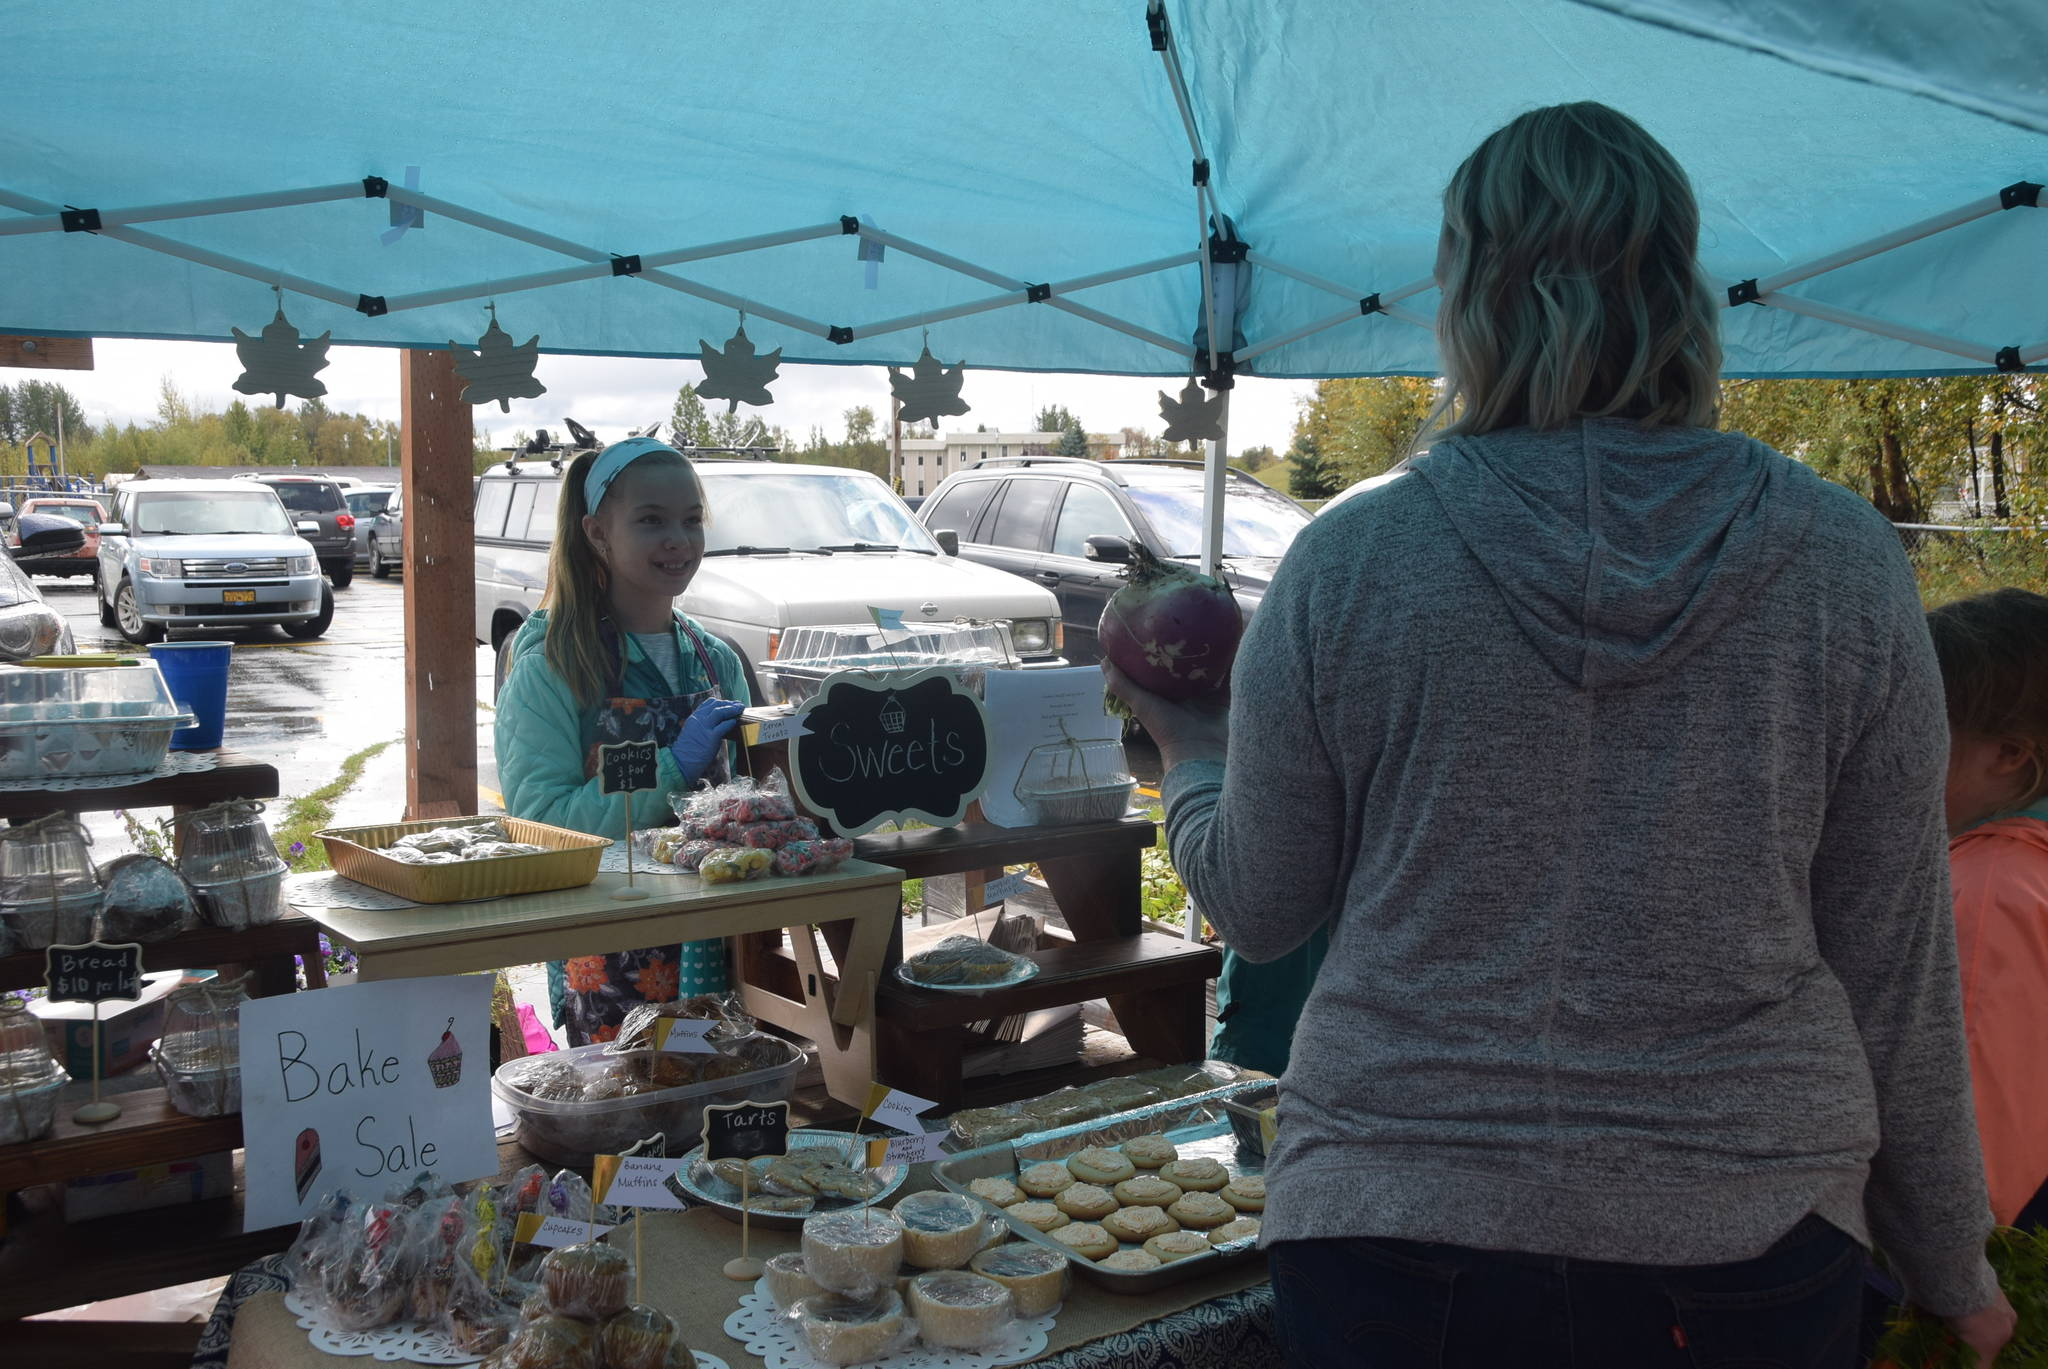 Kaitlyn Miller makes a sale at the baked goods station during the Montessori Farmer's Market at the Soldotna Montessori School on Sept. 13, 2019. (Photo by Brian Mazurek/Peninsula Clarion)